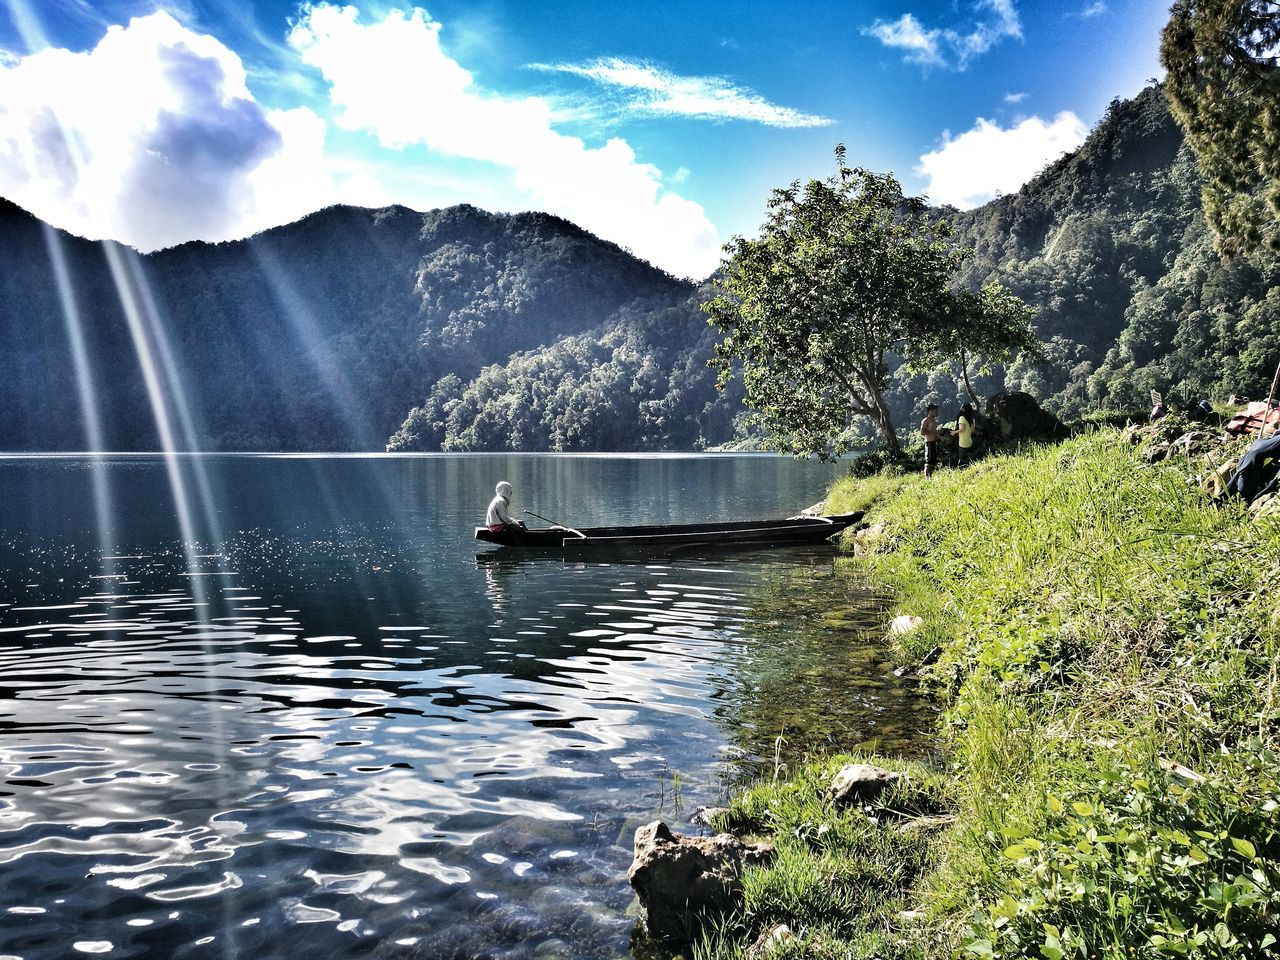 Live For The Story Lakeholon Lakeholonphilippines Lake Holon Travelph LakeHolonMtParker Amateurphotography Water Canoe Trekking Philippines Lake Outdoors PhonePhotography Nature Scenics Day